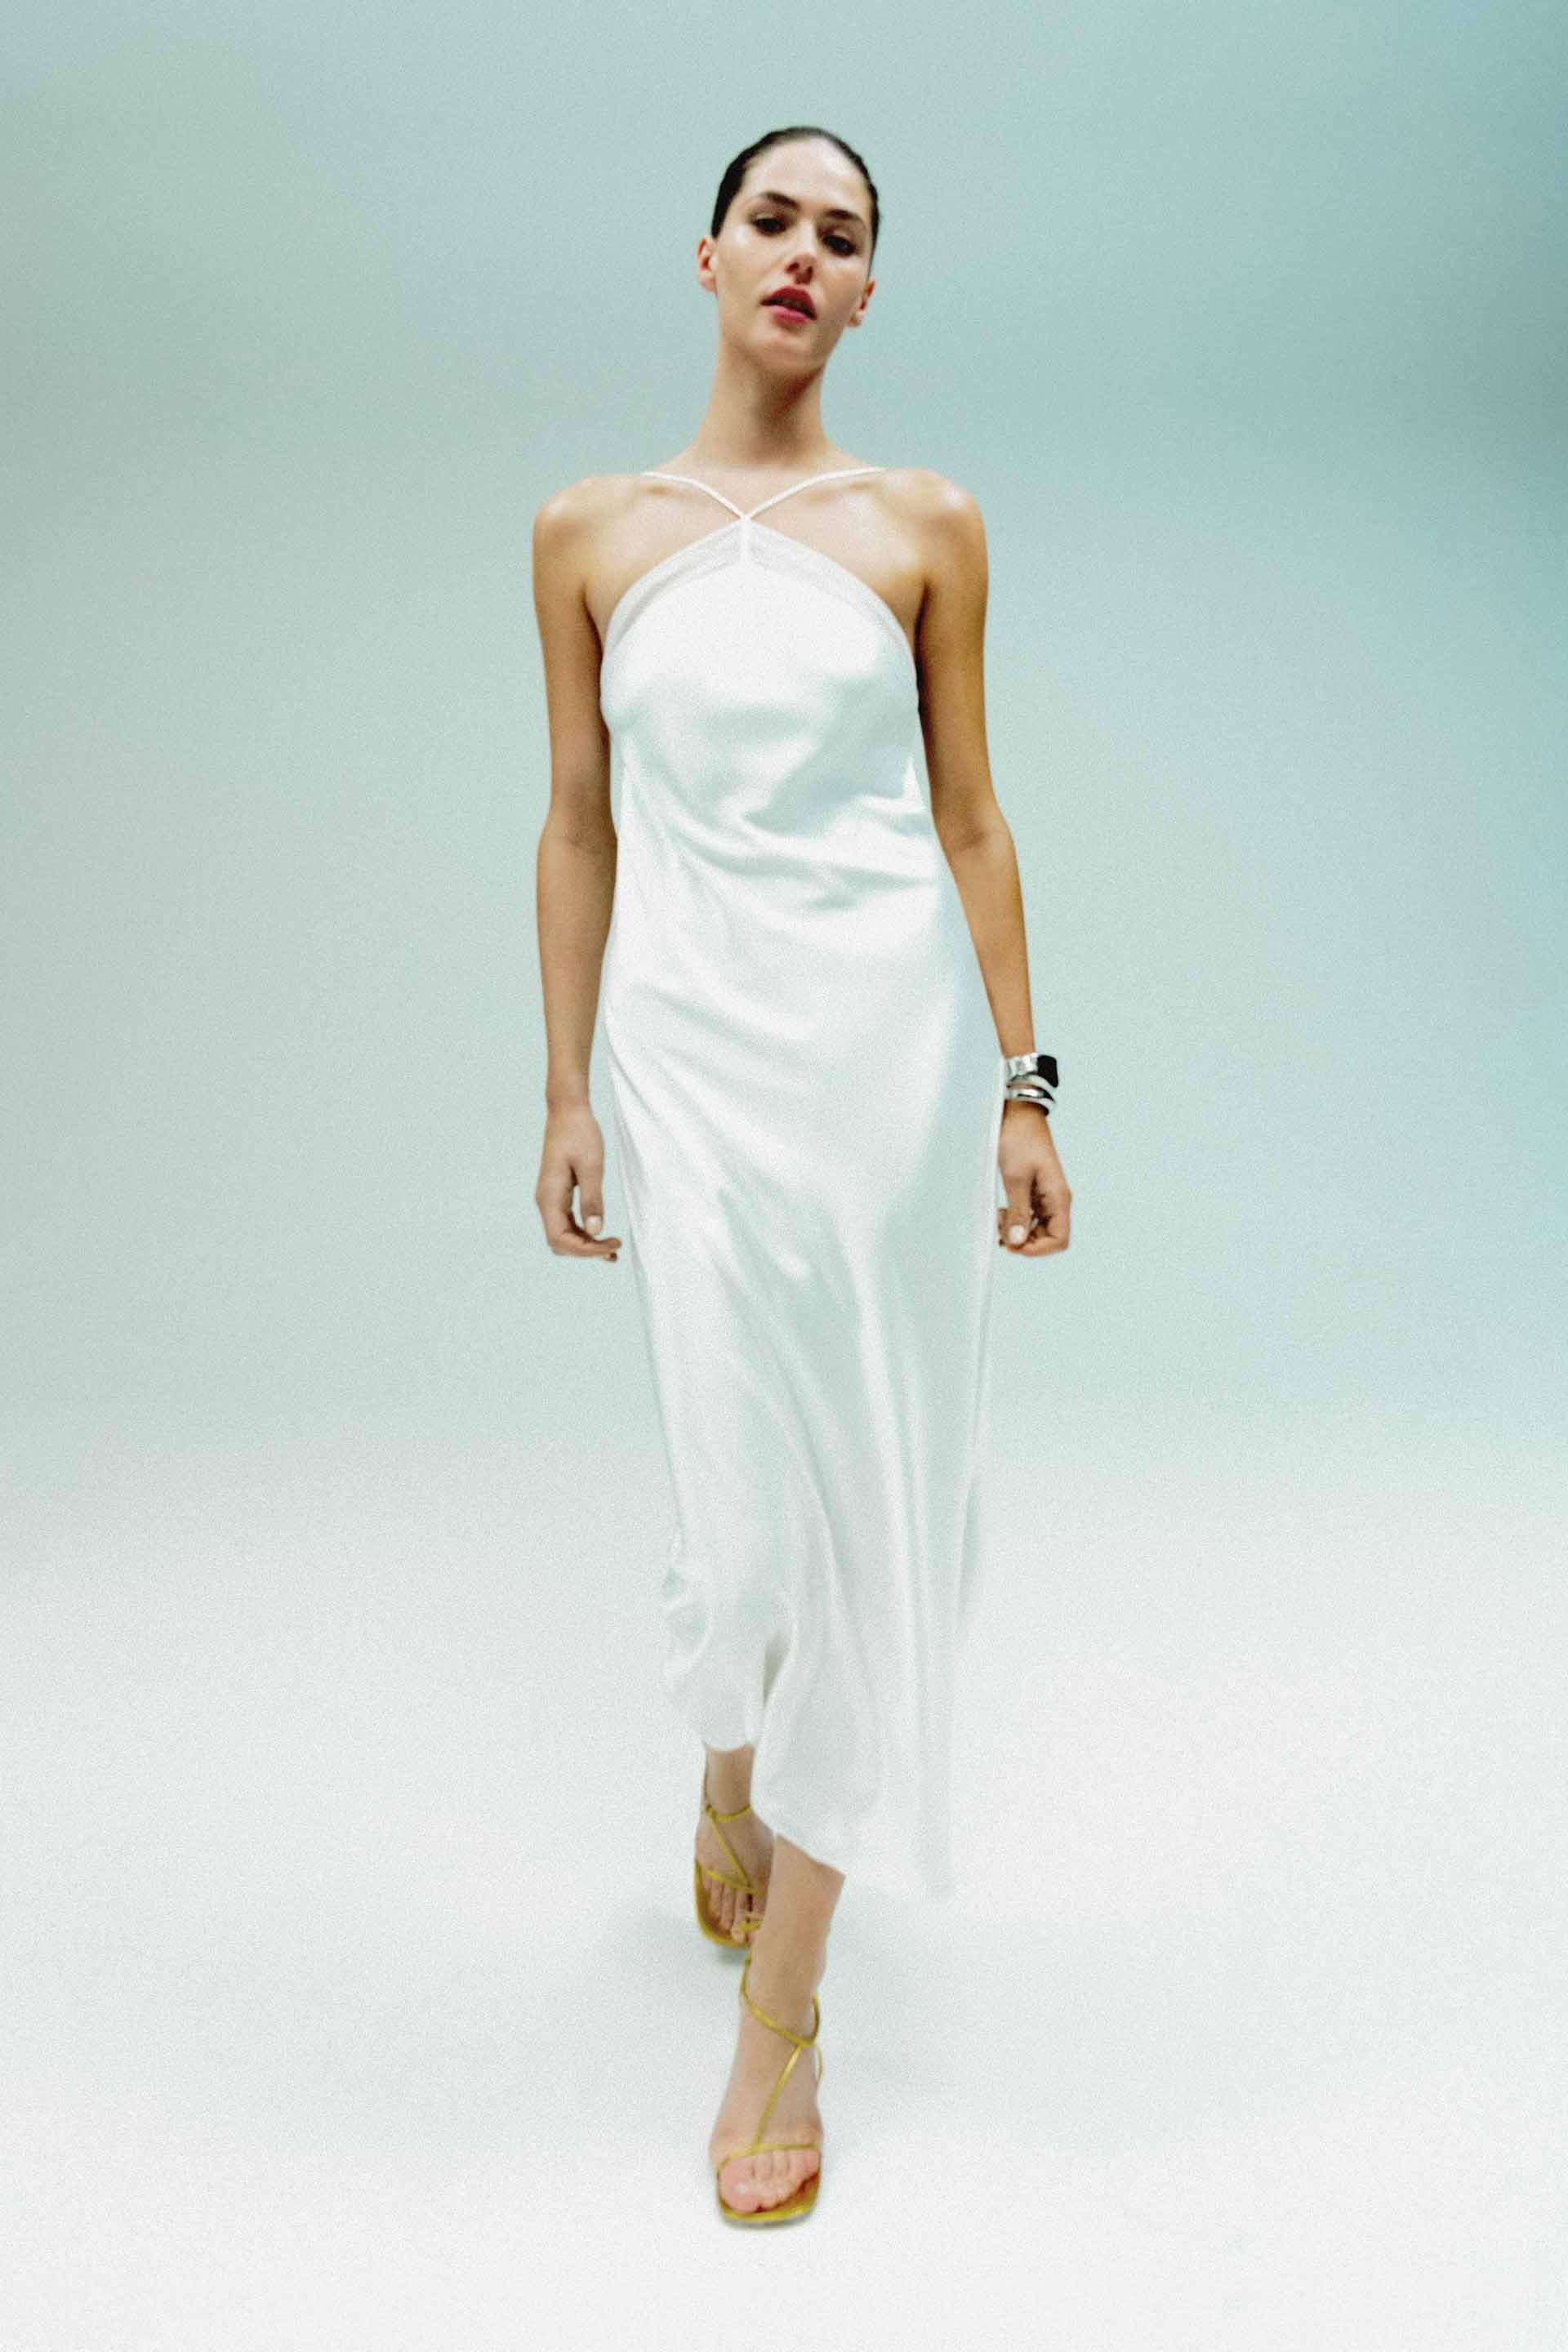 Cropped Florence Bridal Dress